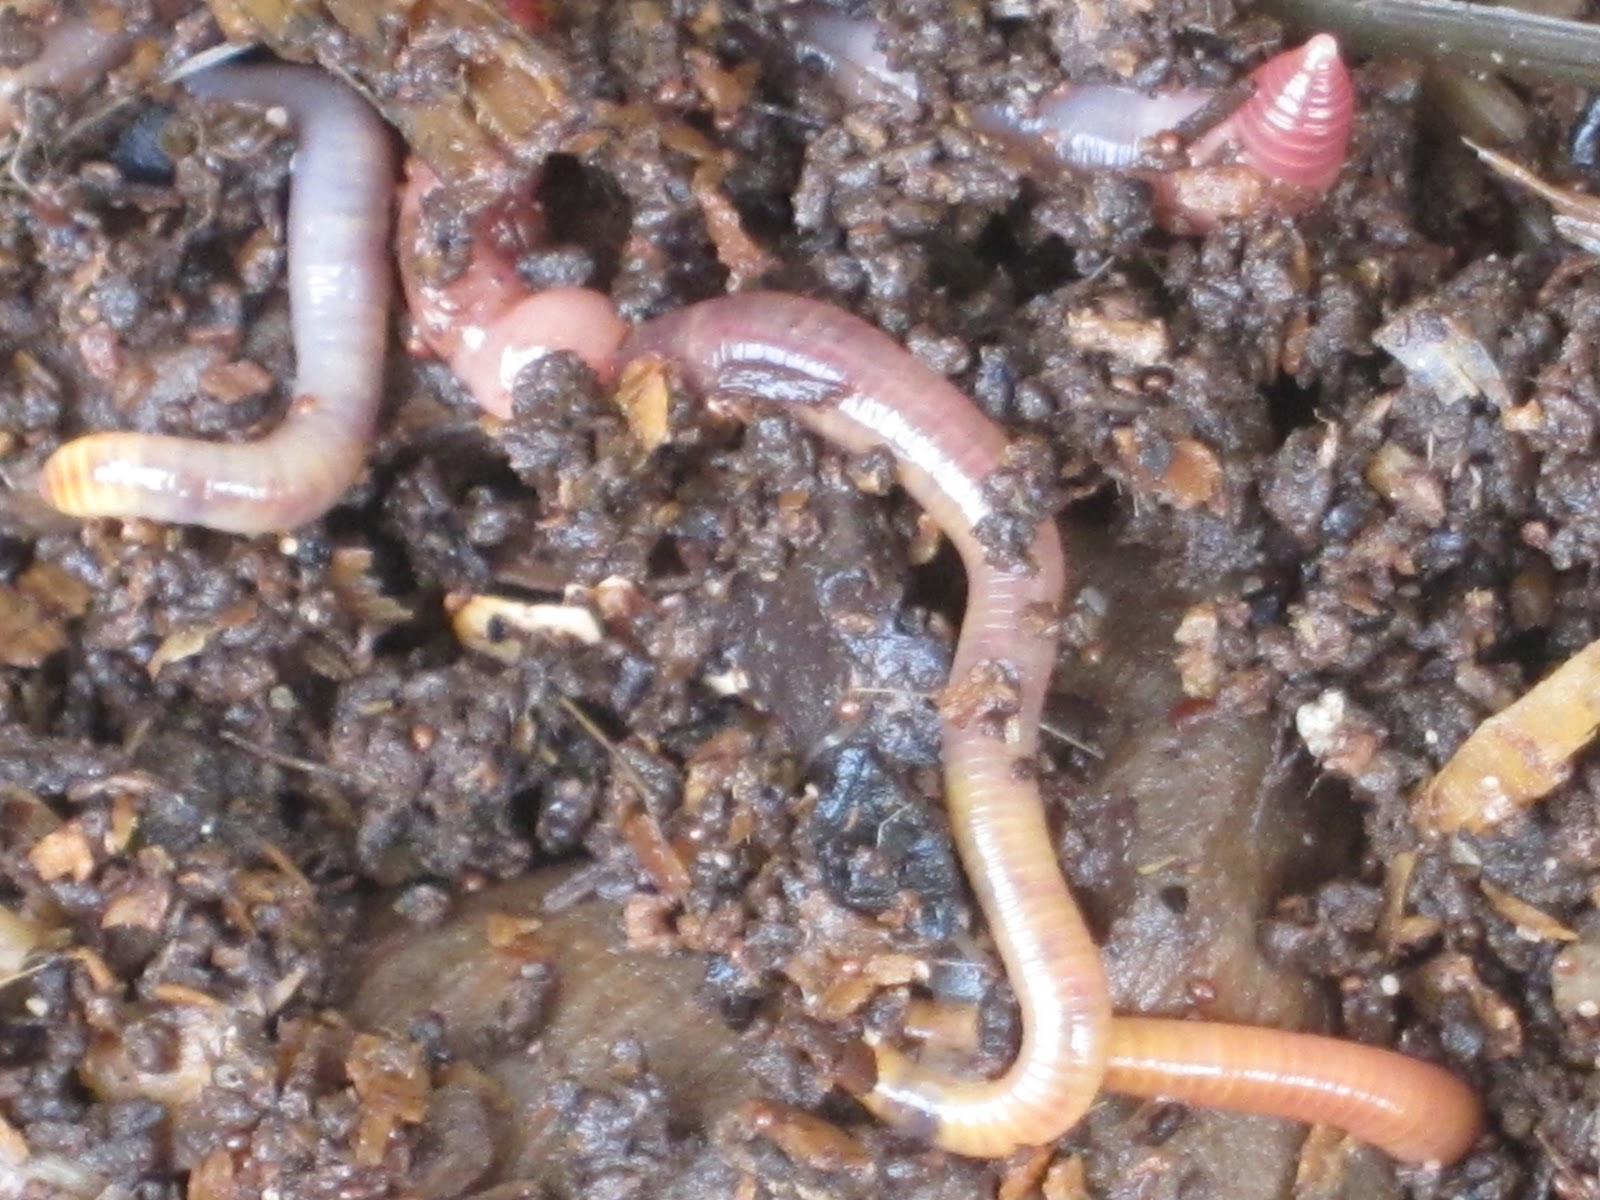 Worms In Cat Litter